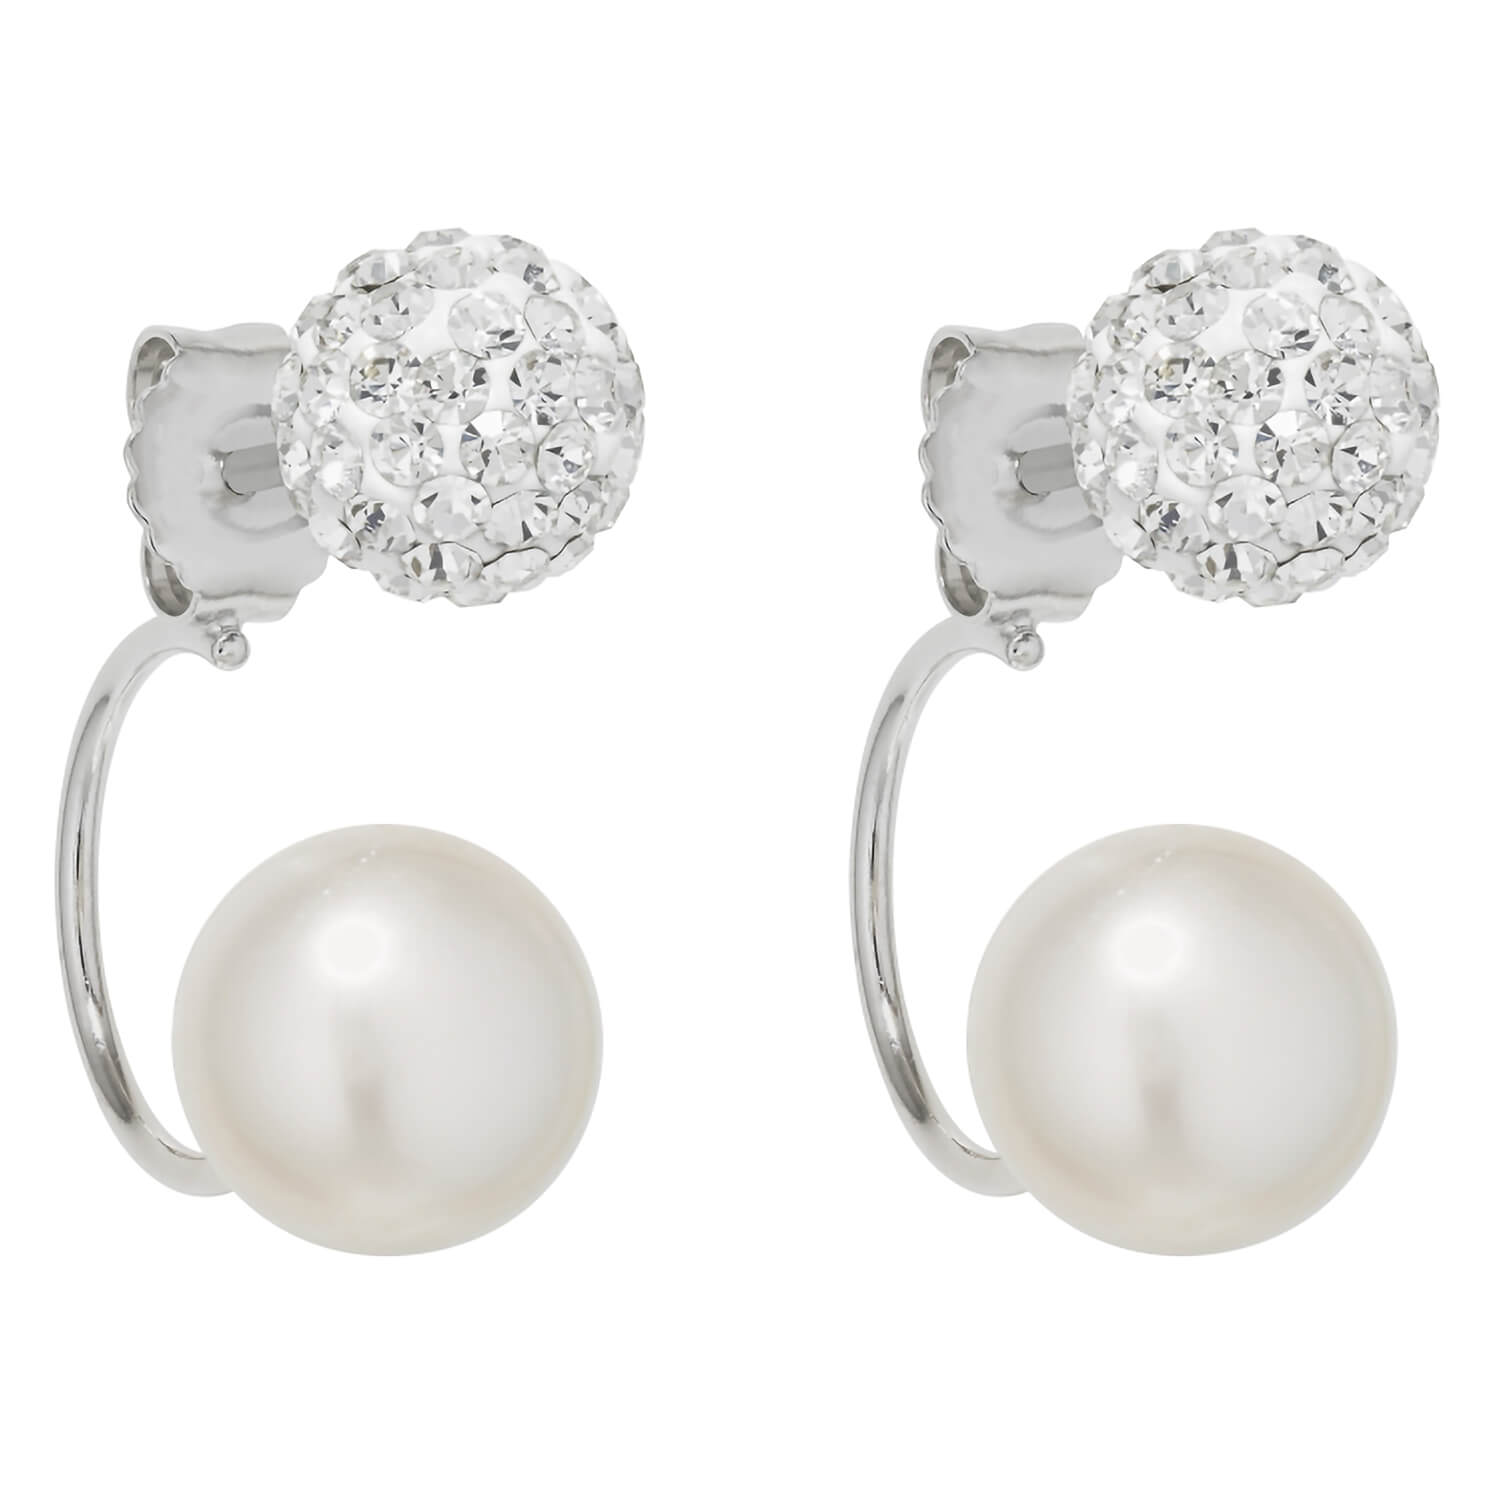 Silver freshwater cultured pearl and crystal drop earrings